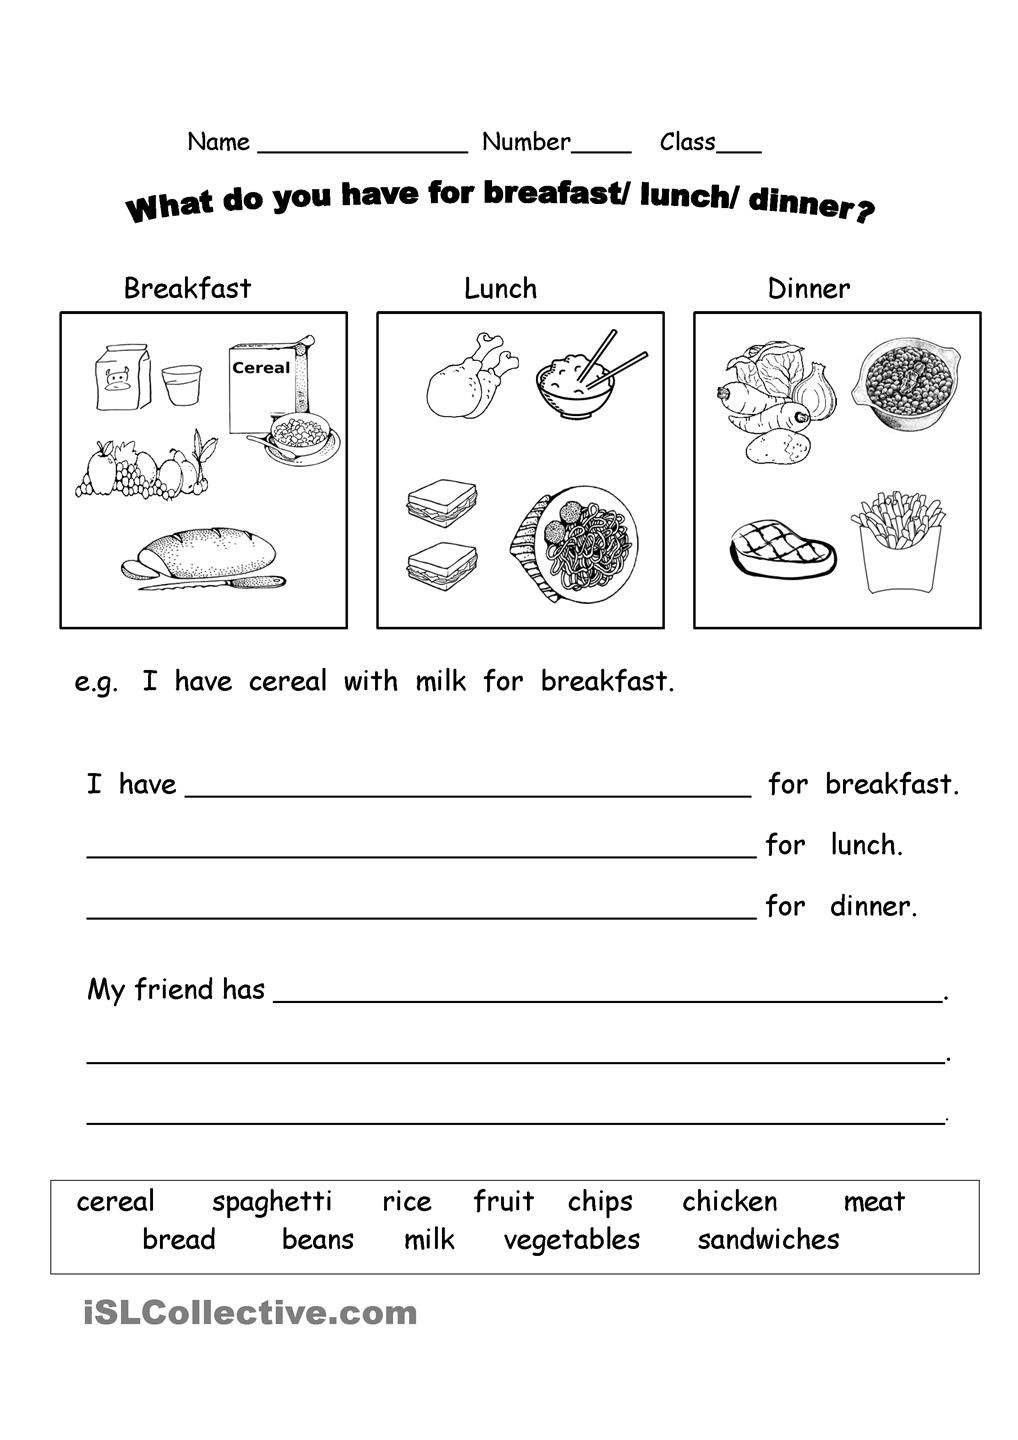 What Do You Have For Breakfast? | Vocabulary Worksheets